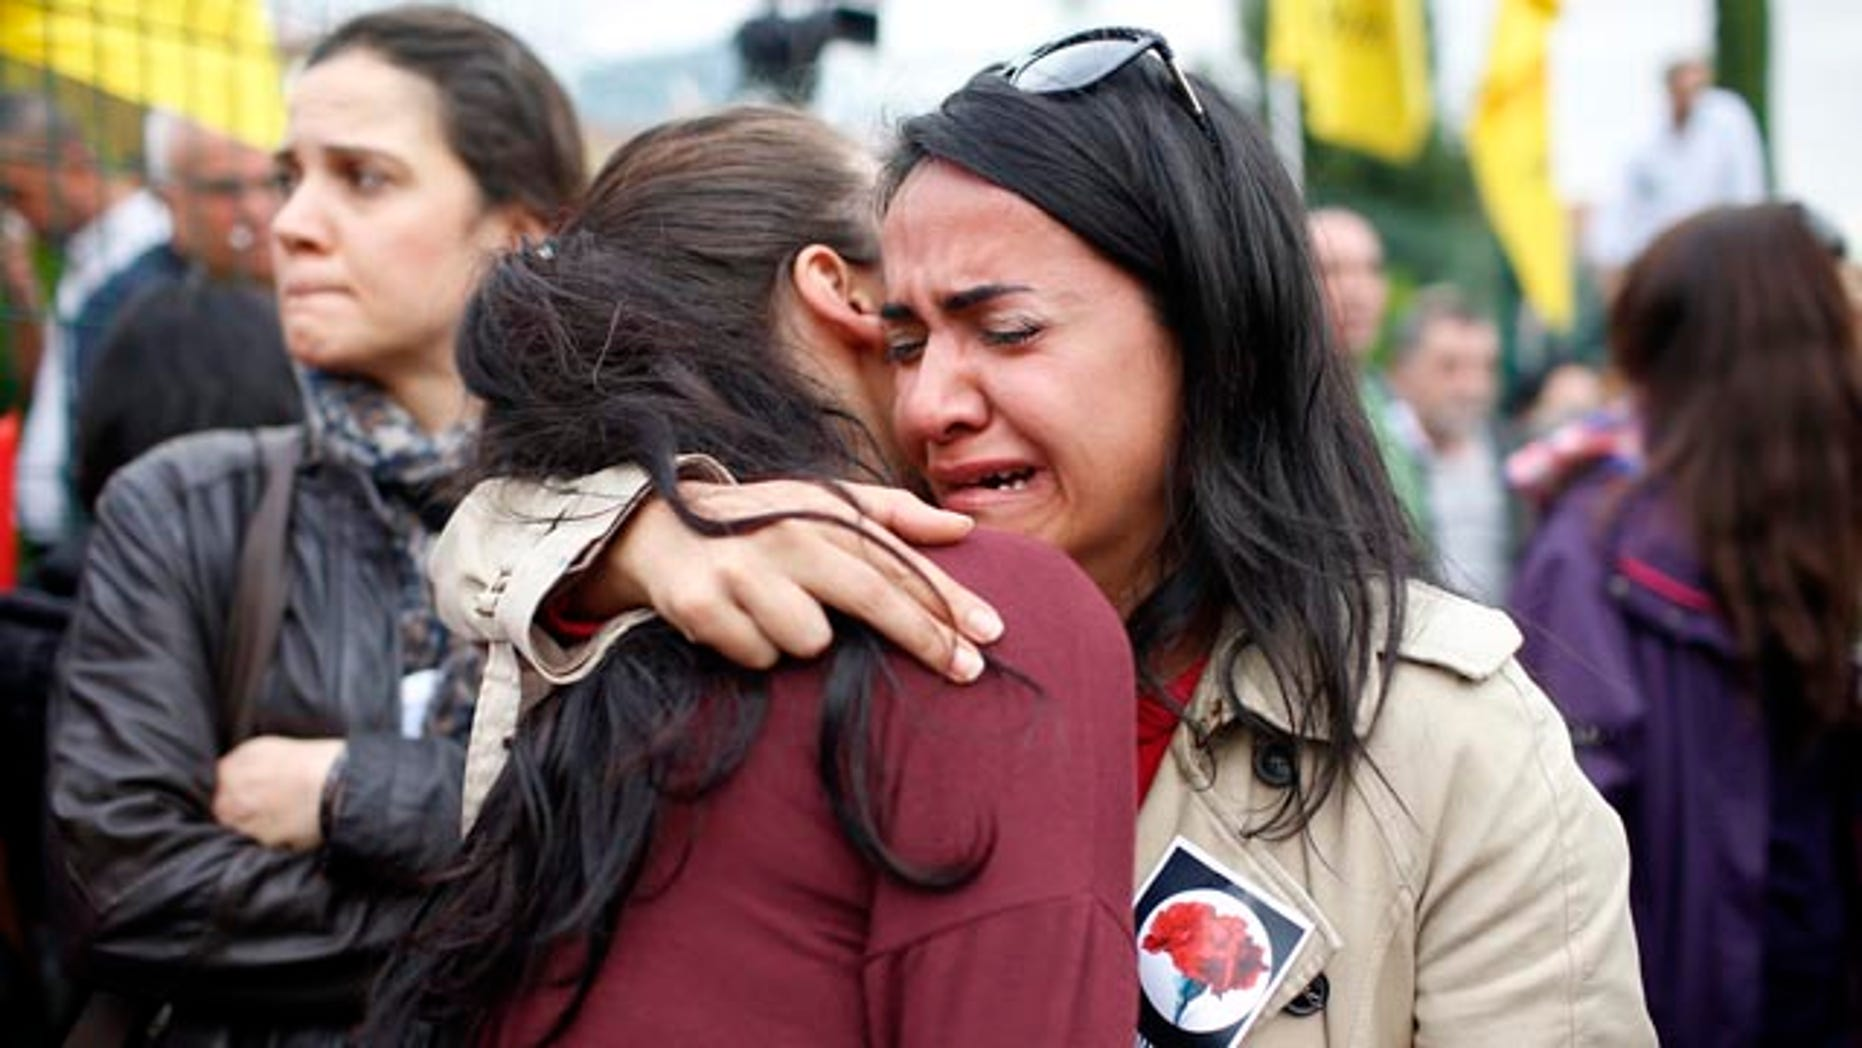 Oct. 12, 2015: Mourners cry during the funeral of Uygar Coskun, 32, killed in Saturday's bombing attacks, during his funeral, in Ankara, Turkey. (AP Photo/Emrah Gurel)